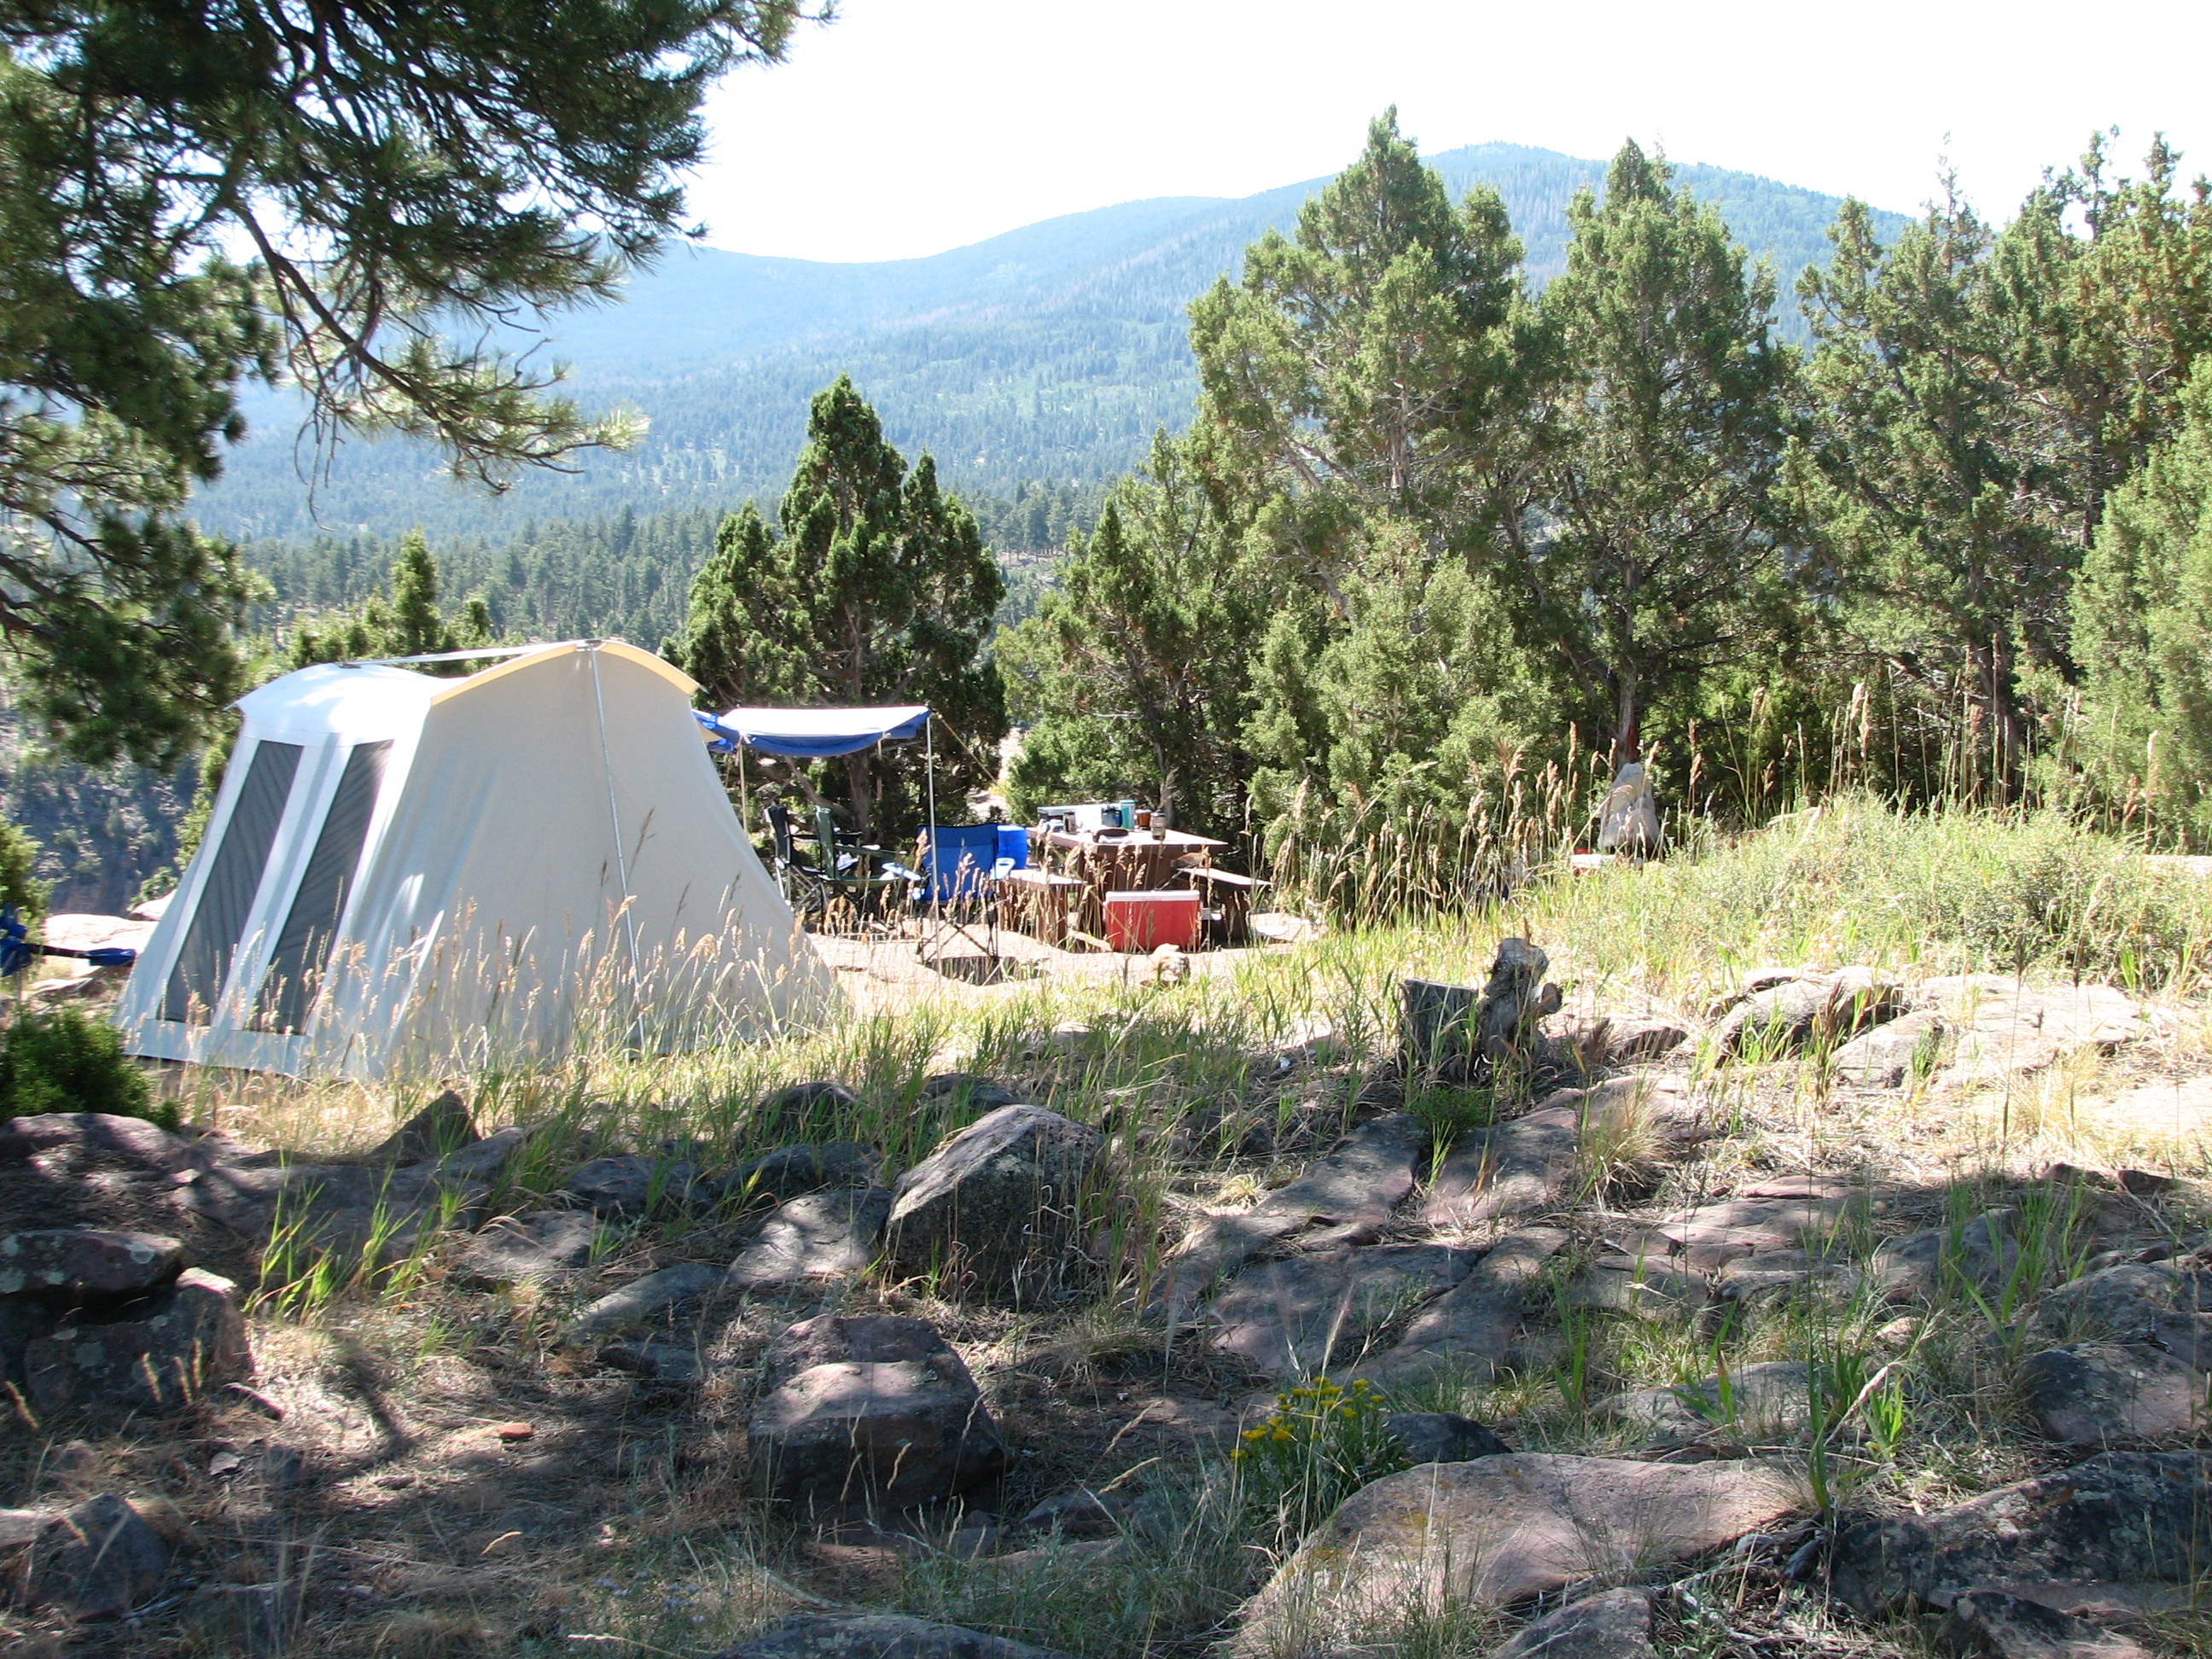 Photo of a site at the Firefighters Campground.